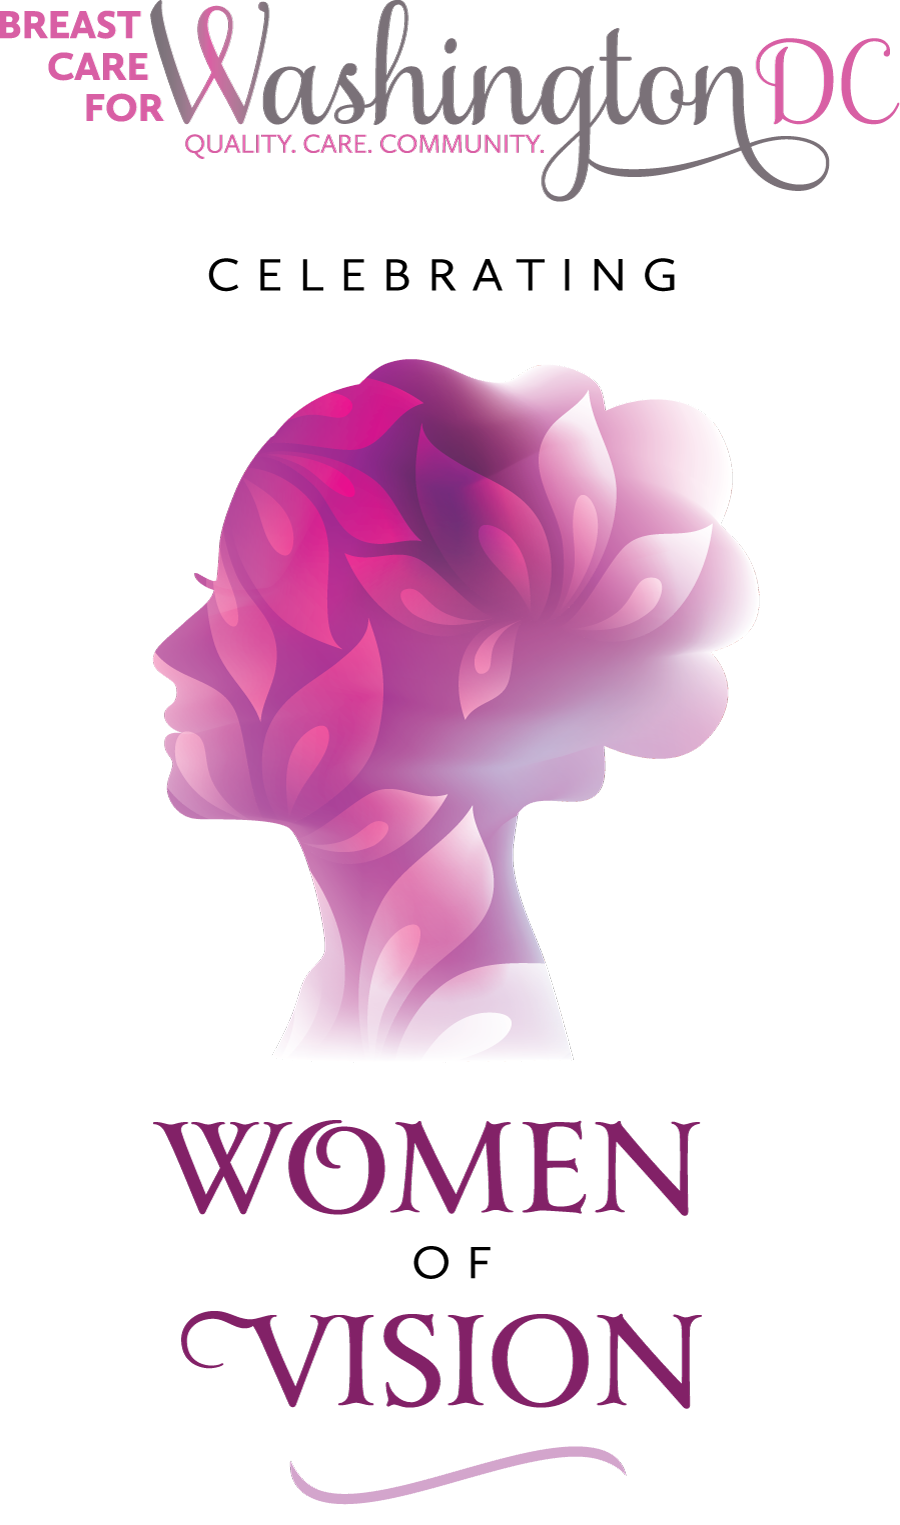 Women of Vision 2018 image